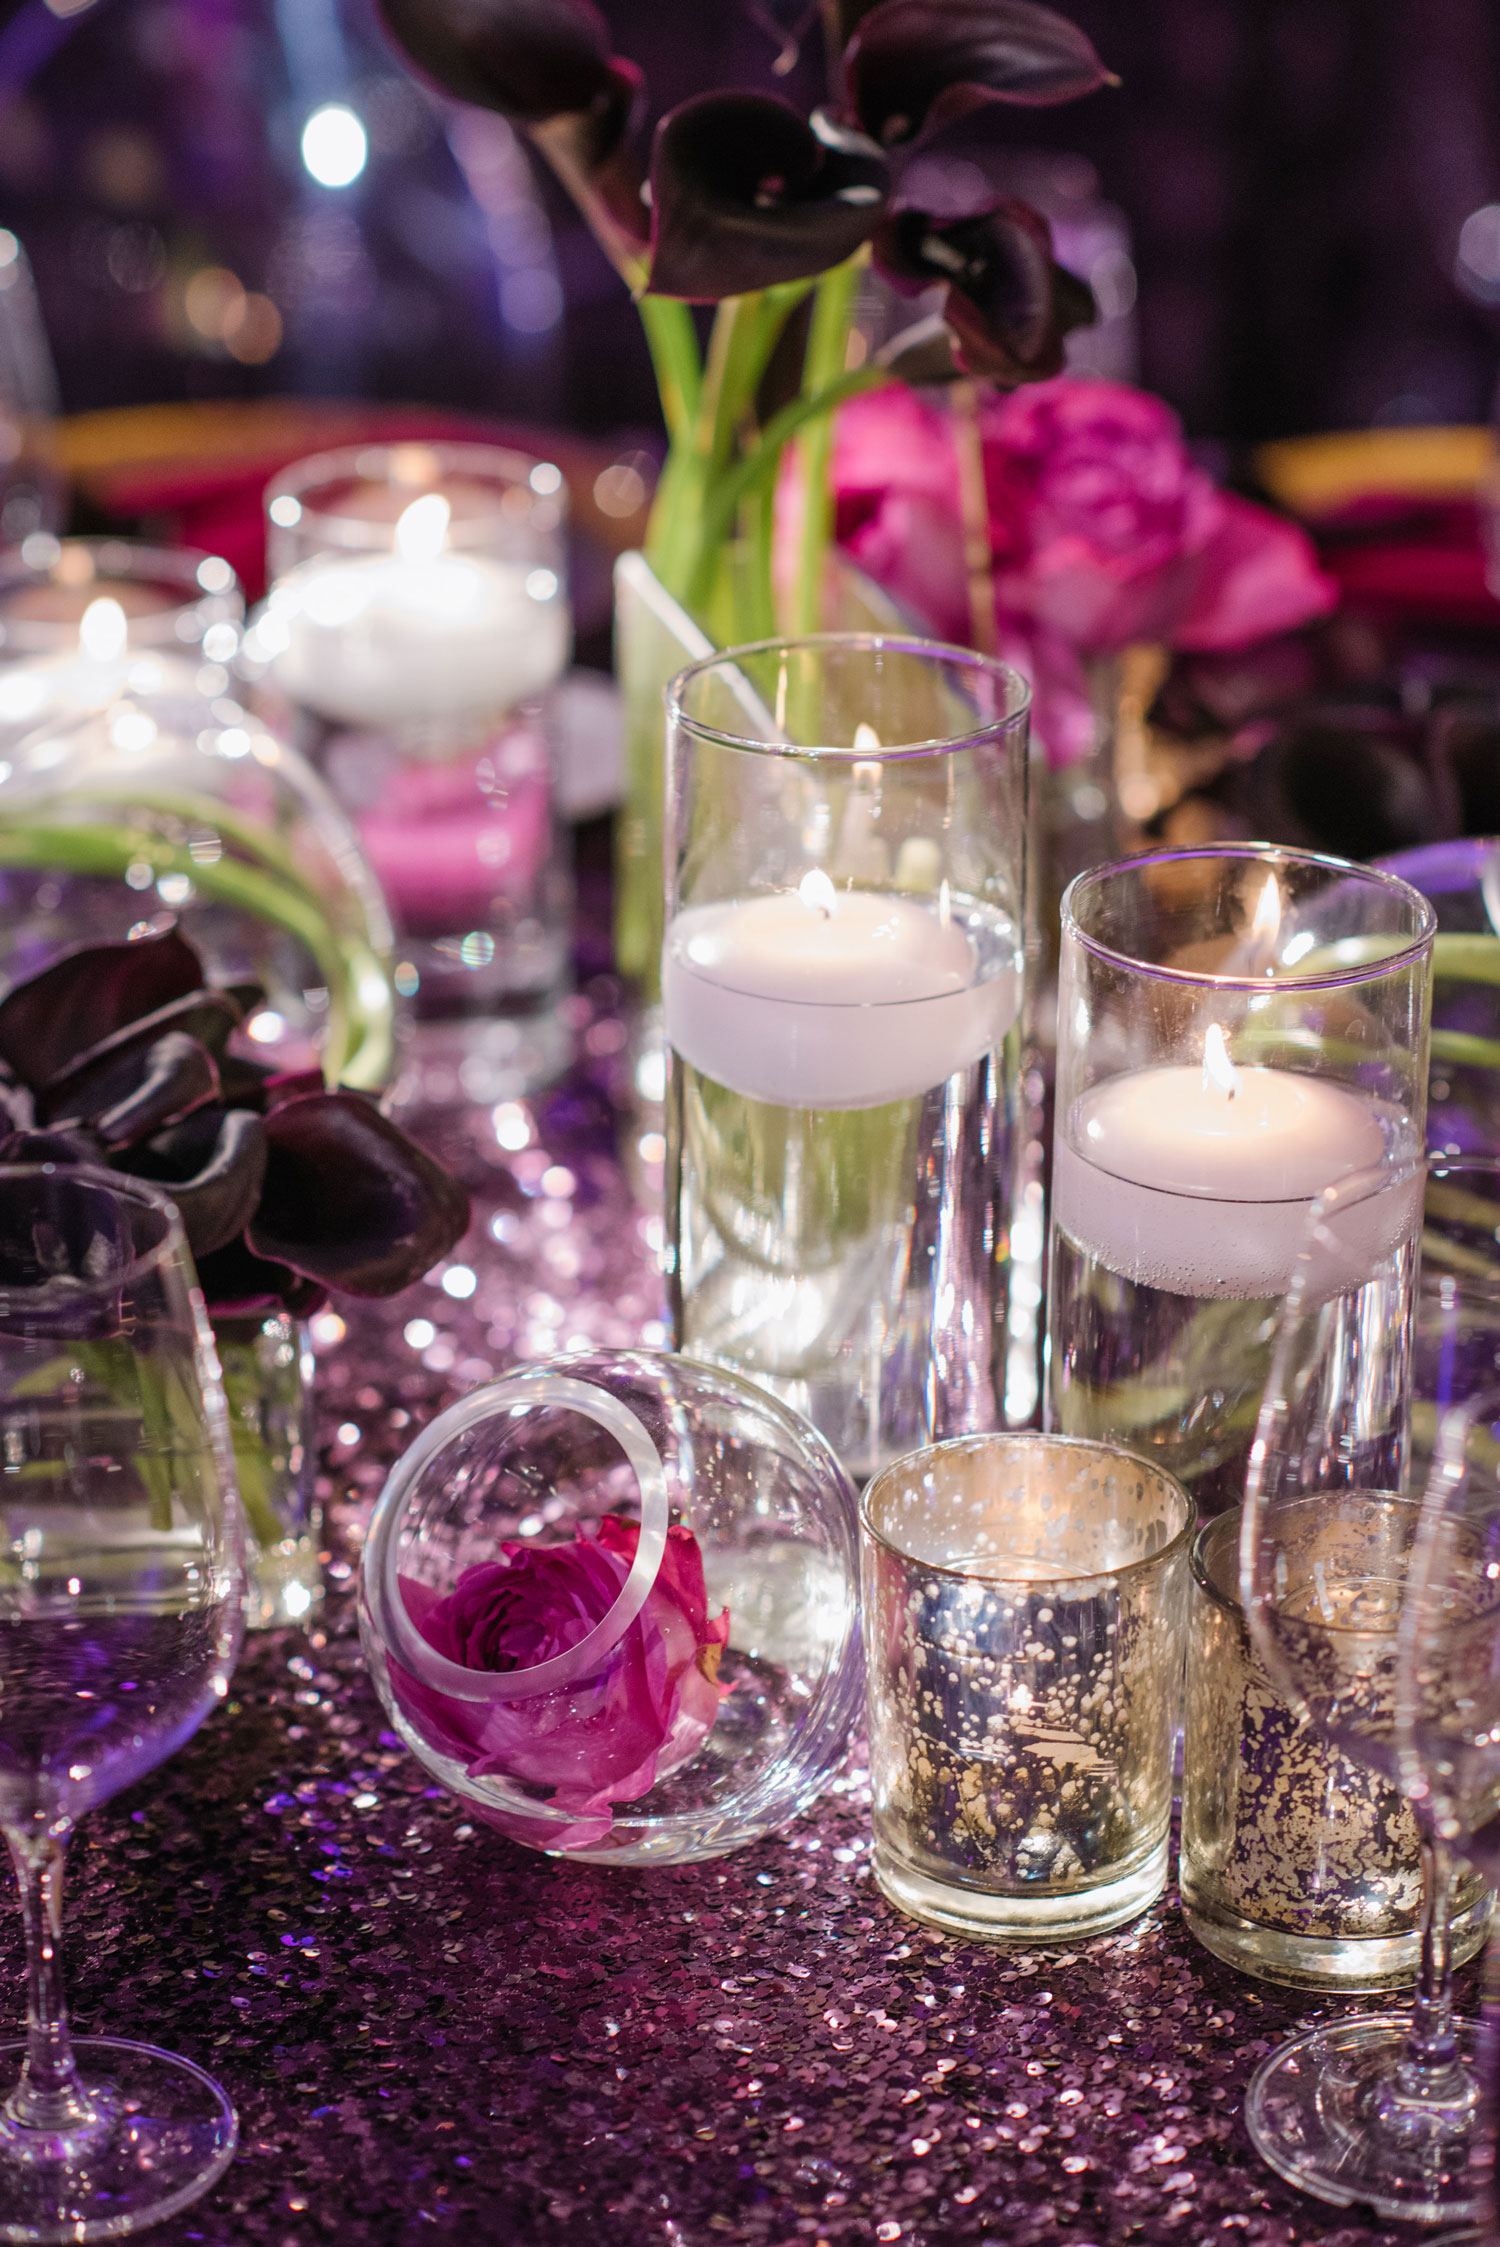 Wedding reception floating candles on table wedding ideas